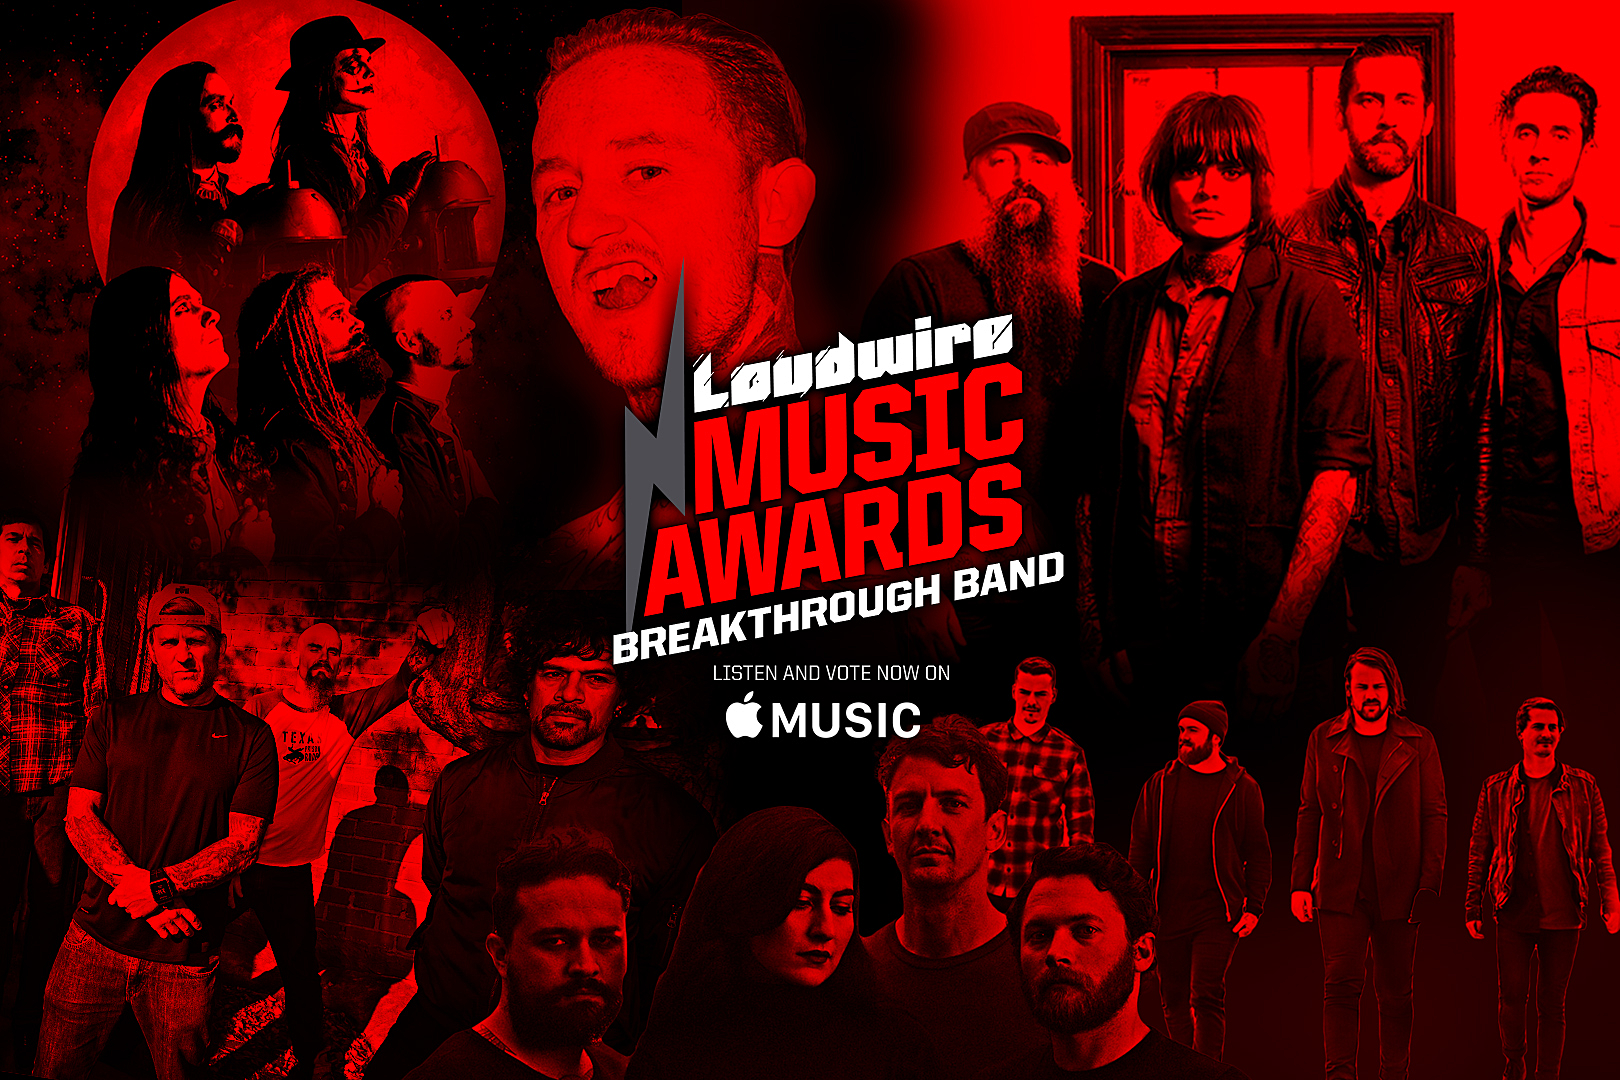 Vote for the Breakthrough Band of the Year – 2017 Loudwire Music Awards